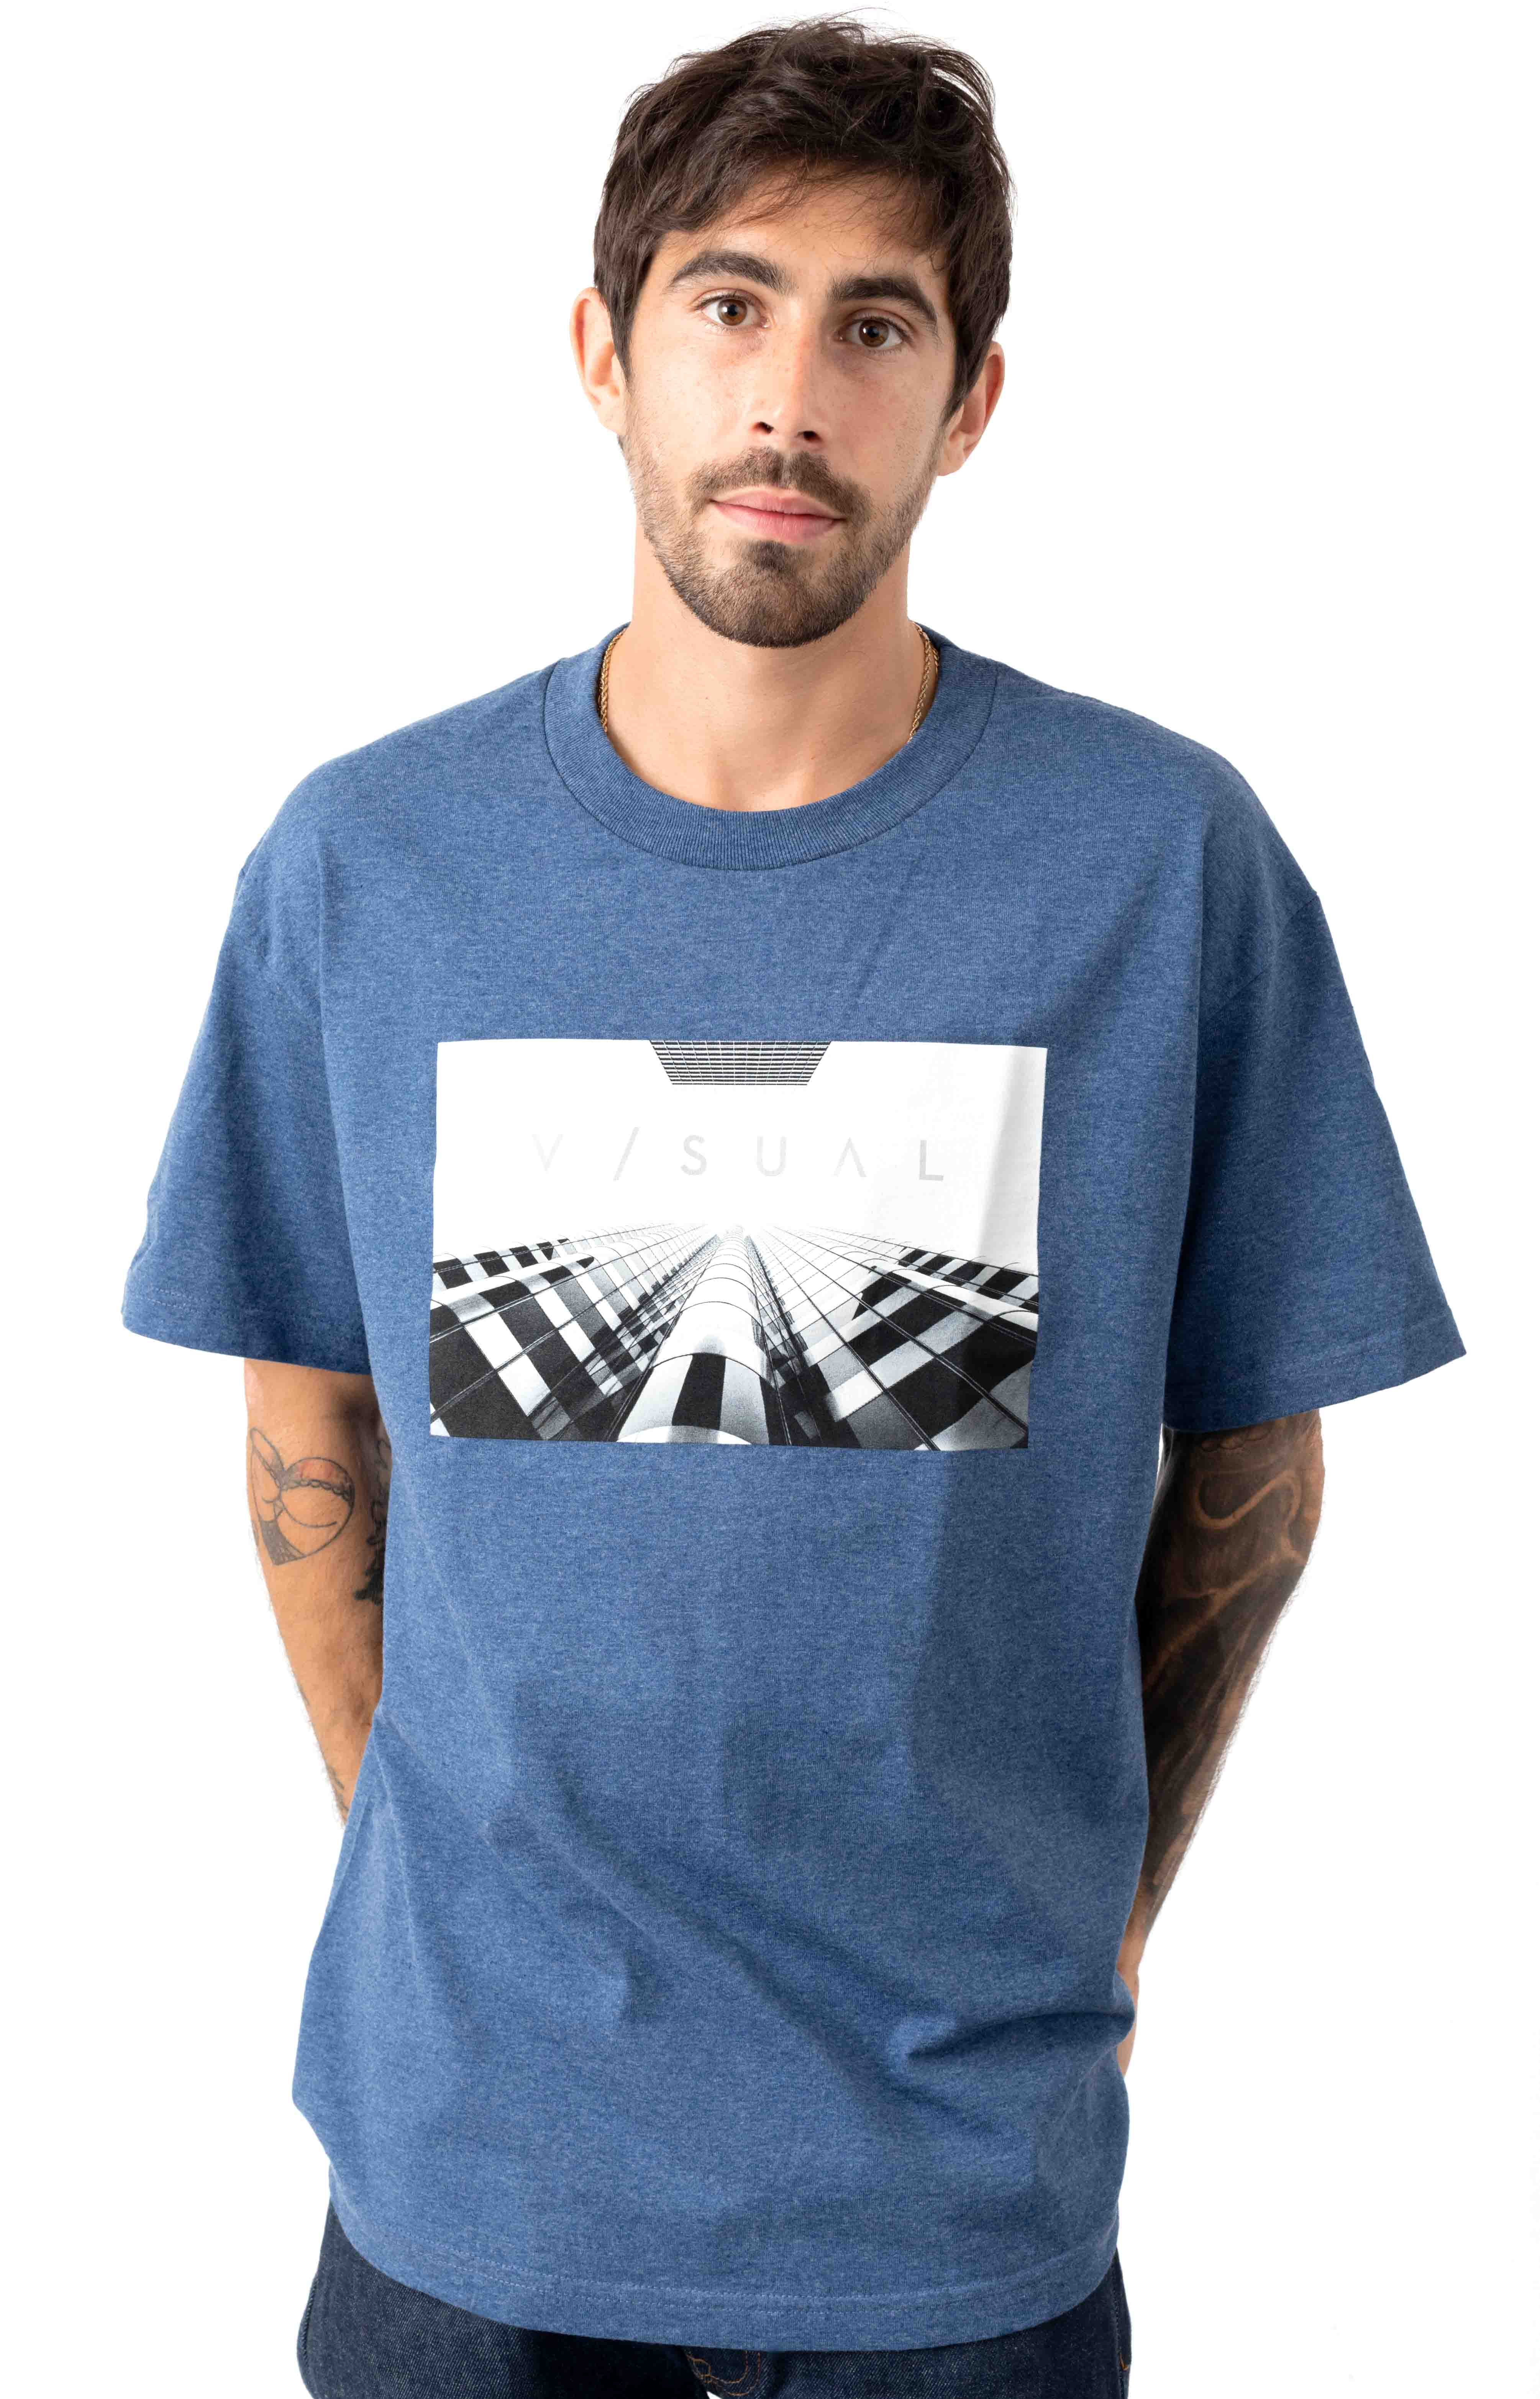 Structure T-Shirt - Denim Heather